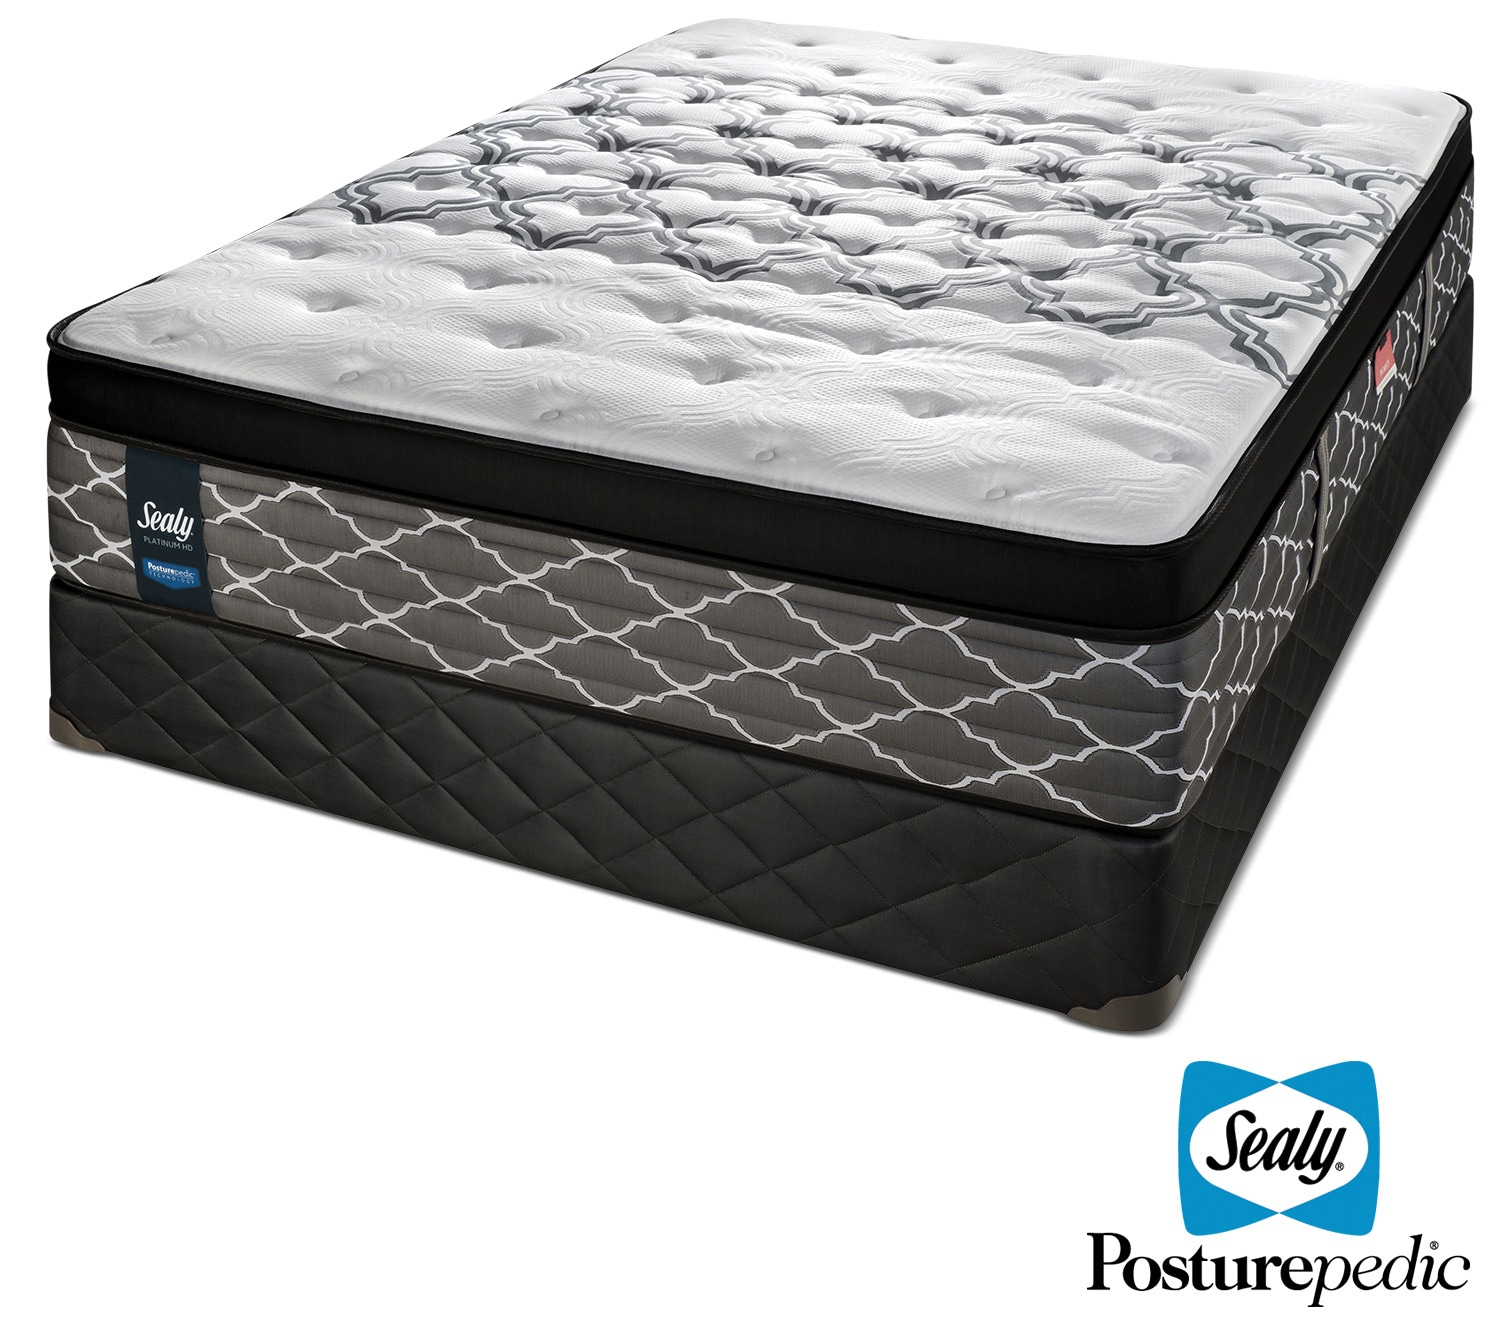 Mattresses and Bedding - Sealy Dreamy Night Hybrid Firm Queen Mattress and Boxspring Set